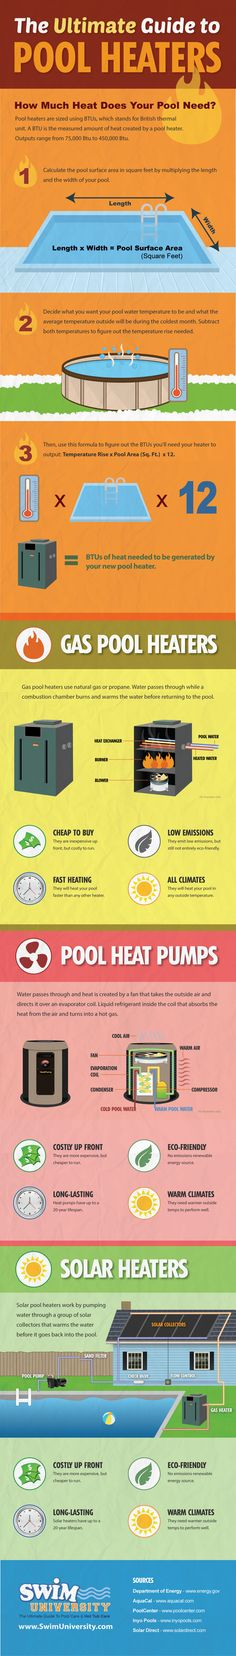 The Ultimate Guide to Pool Heaters Infographic